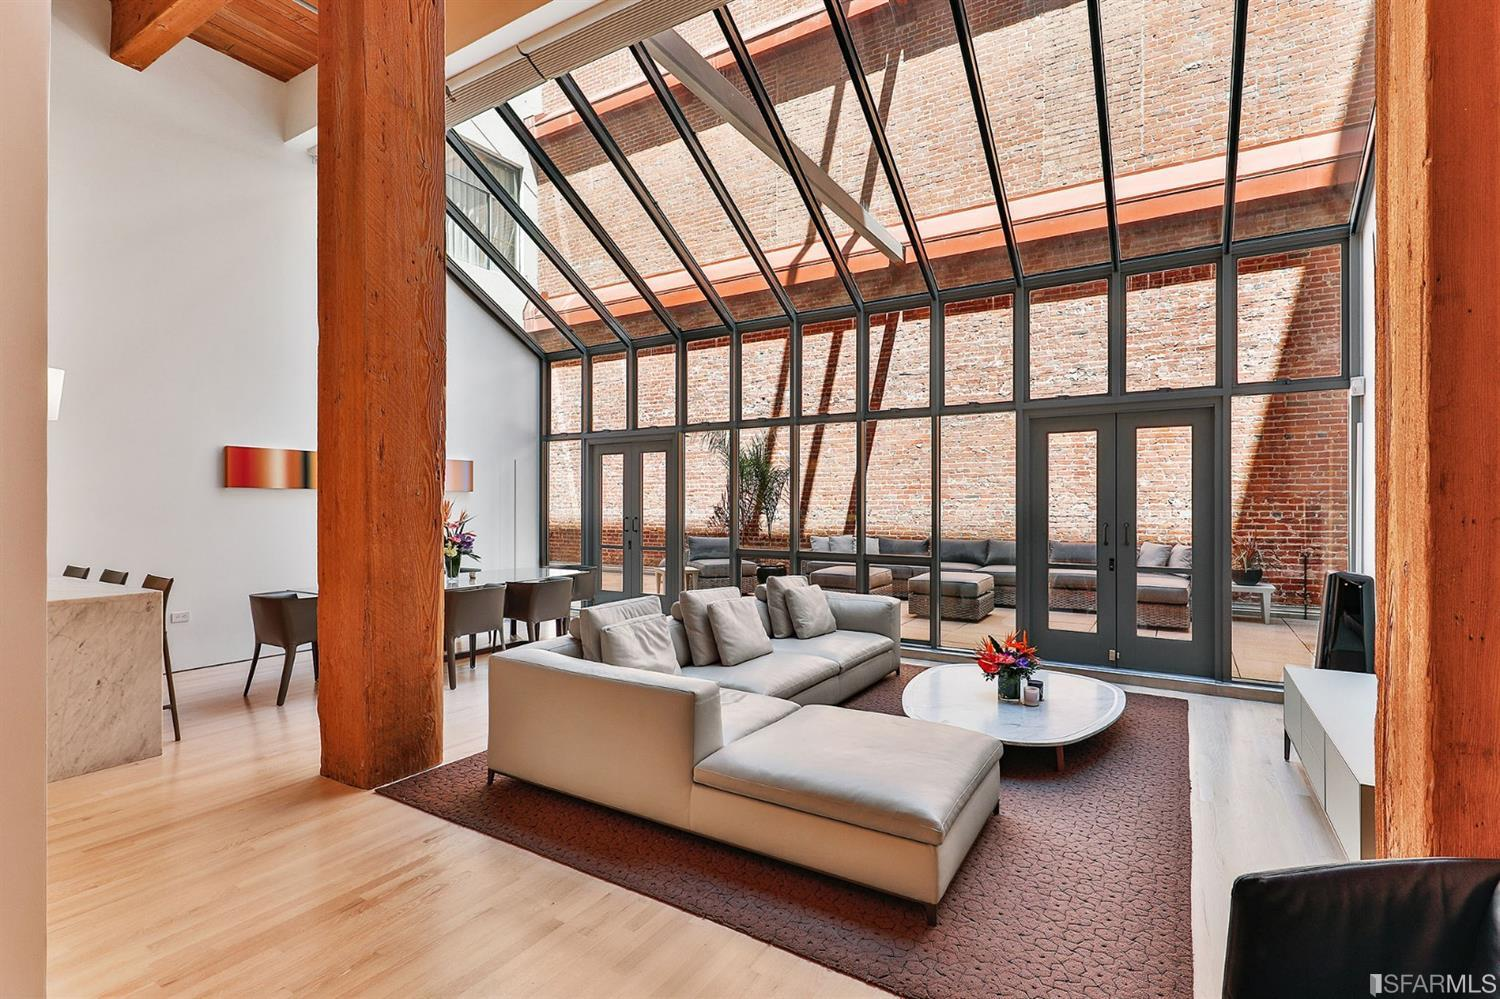 355 Bryant Street #102 sold in May, 2109 for $2,425,000